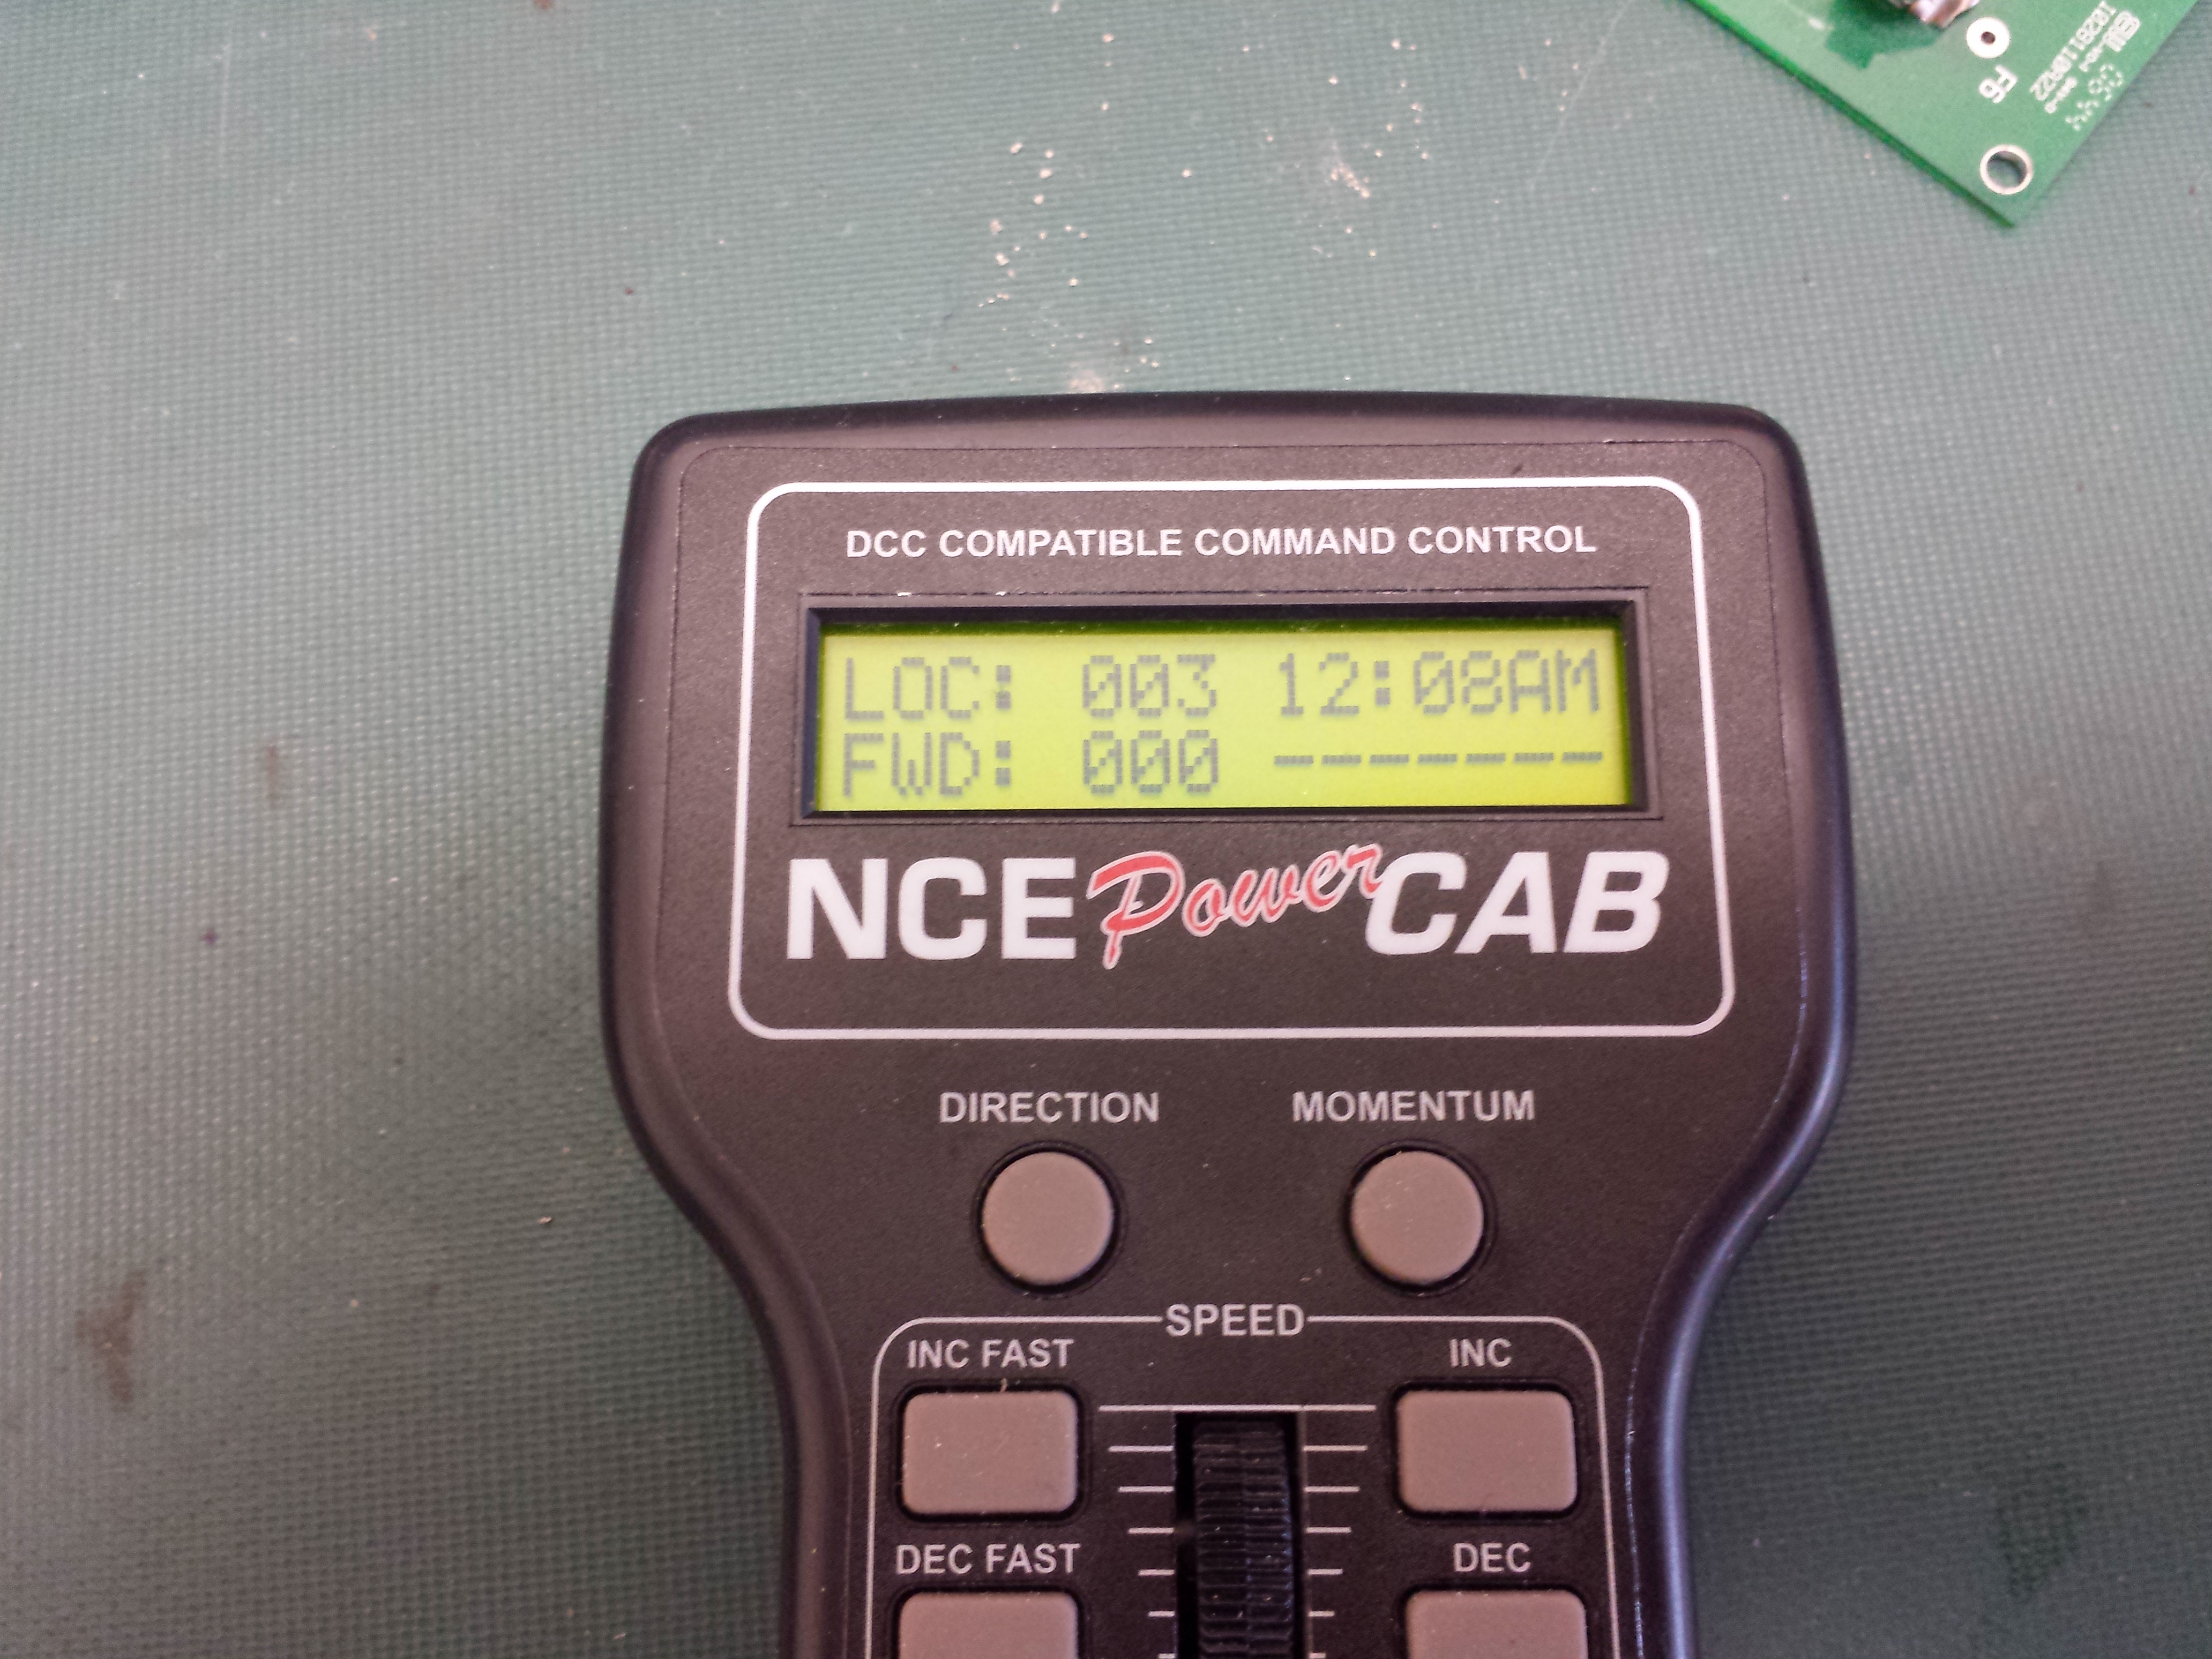 Power Cab Will Not Run A Locomotive Led On Panel Blinking Or Dcc Track Wiring Signal Light Powercab Display